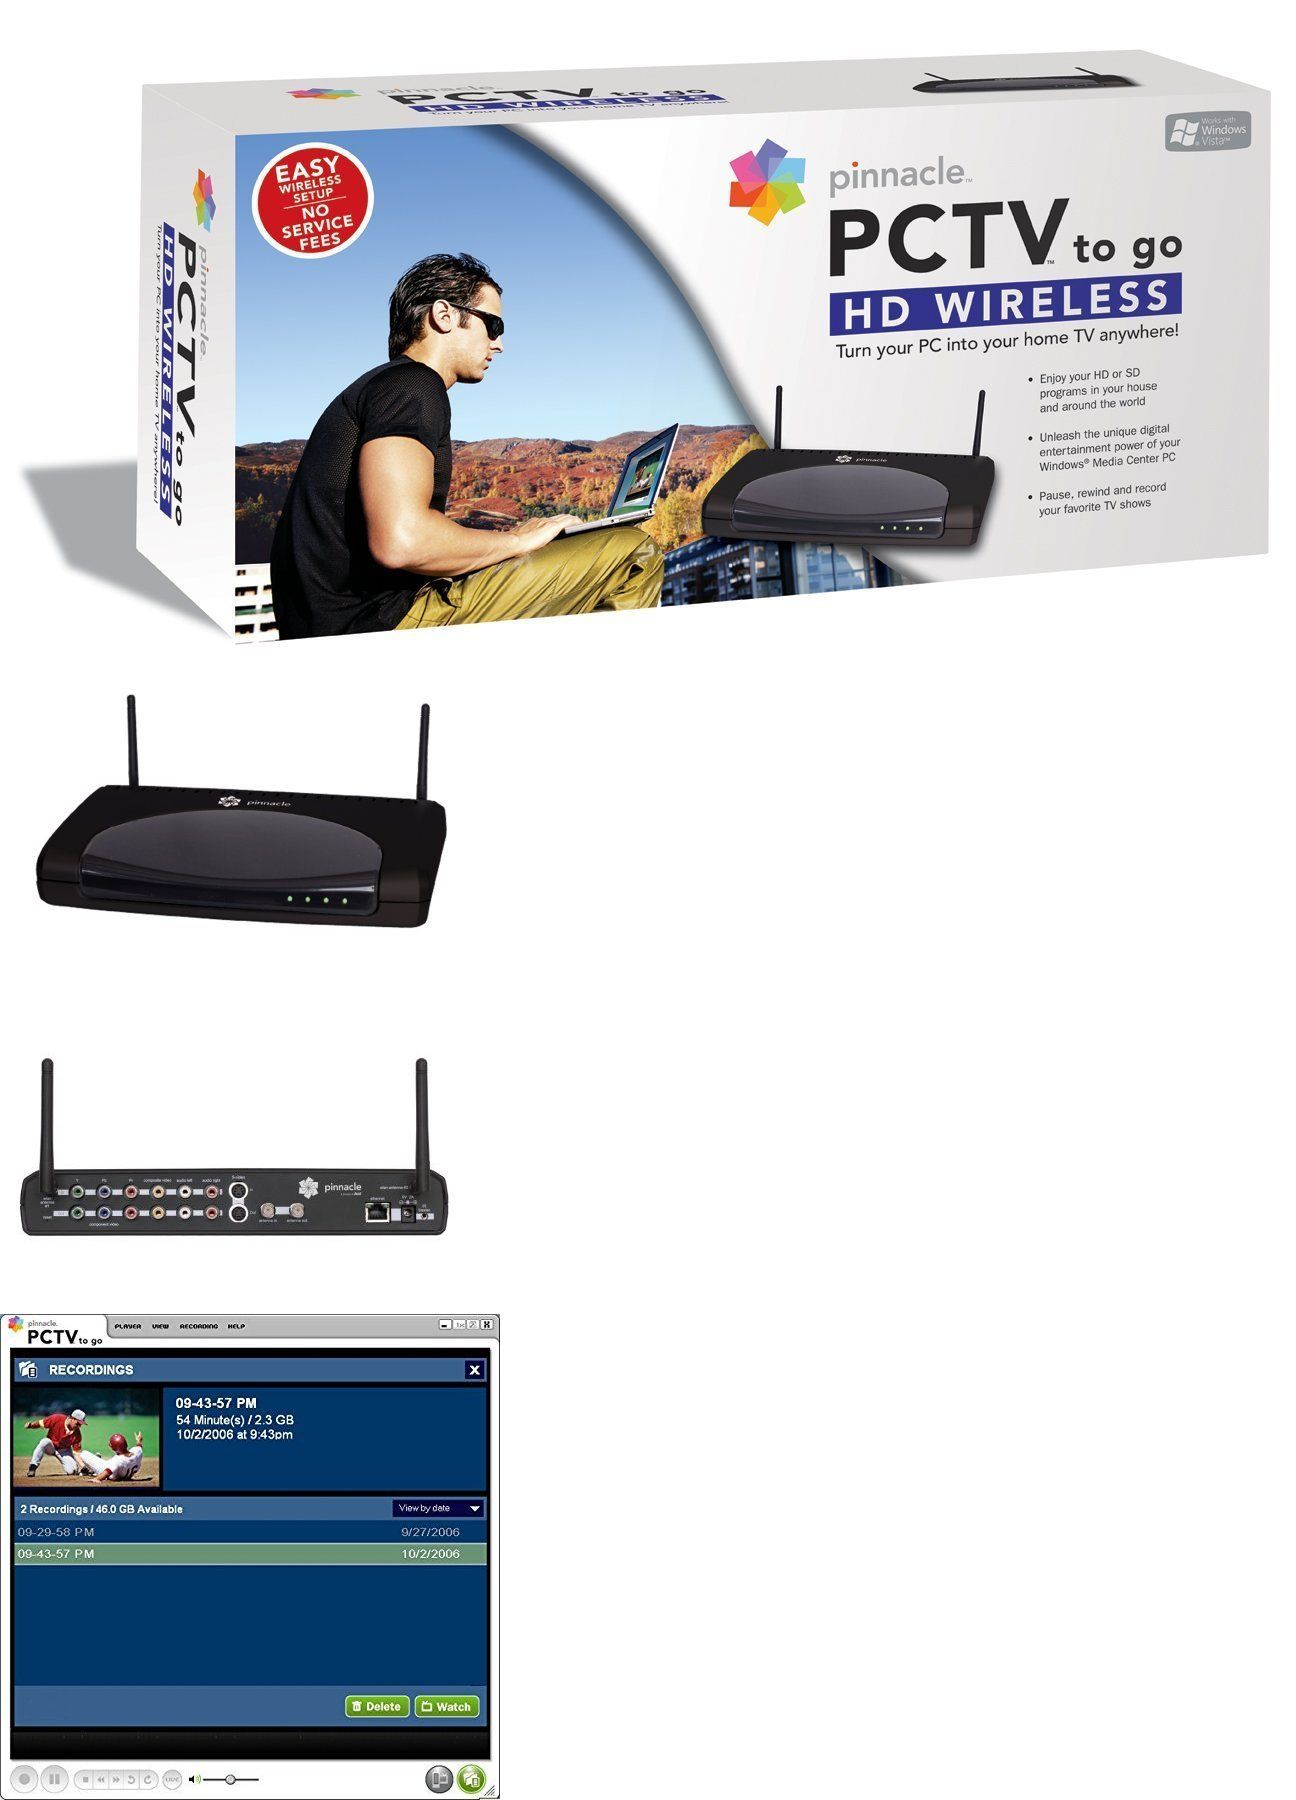 PINNACLE PCTV TO GO HD WIRELESS DRIVER FOR WINDOWS MAC